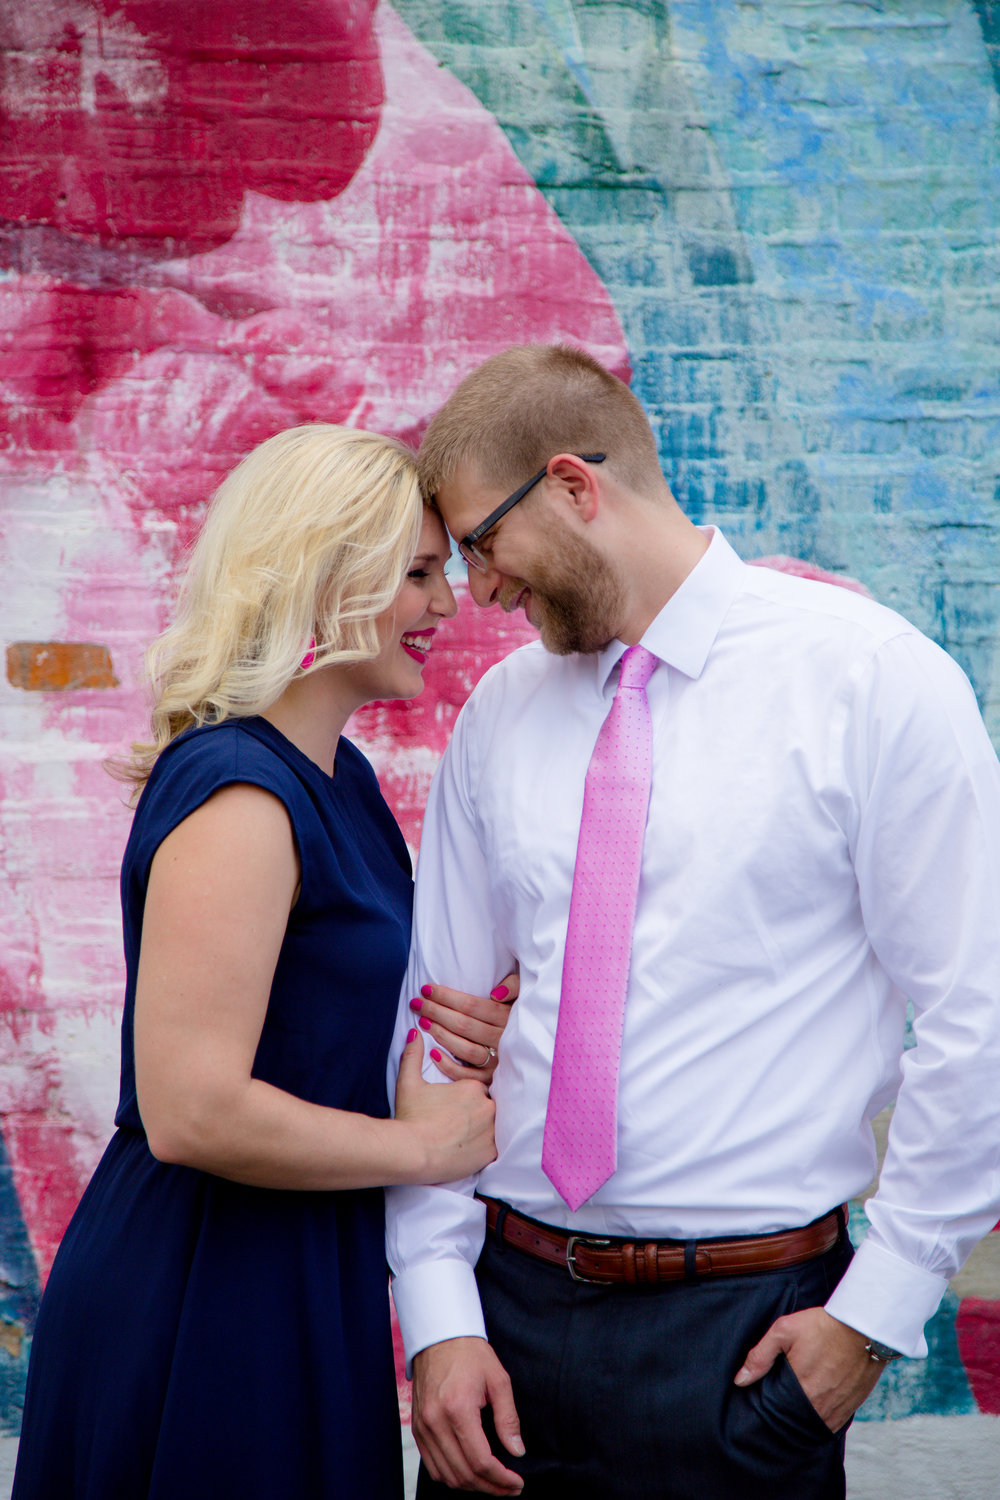 downtown columbus mural engagement session | Columbus Wedding Photography (c) 614 Wedding Photography